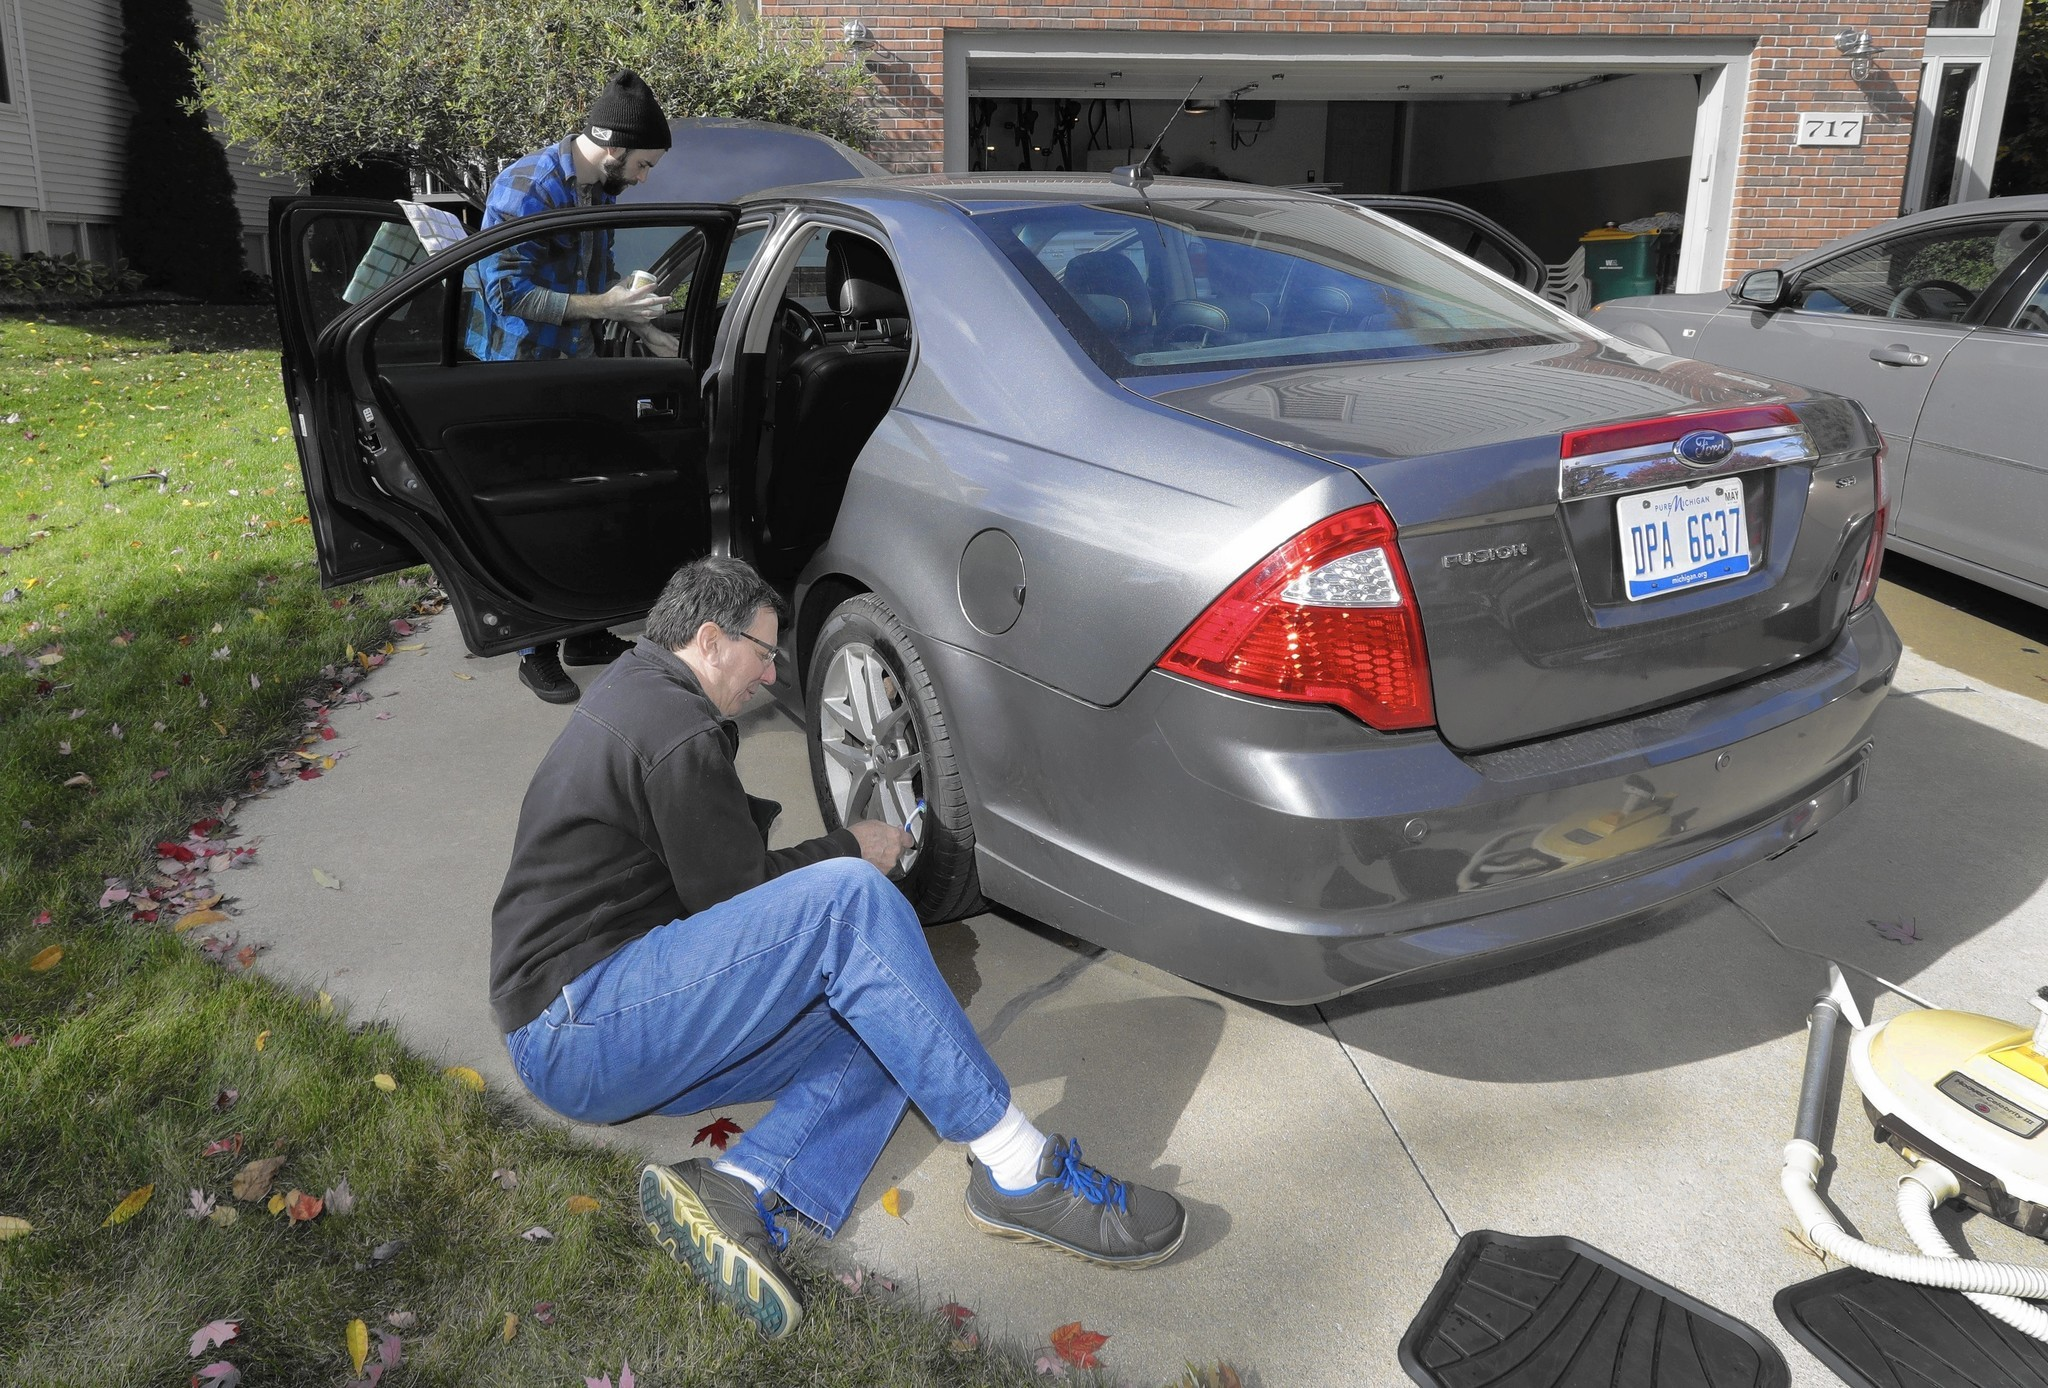 Car Care & Safety - Chicago Tribune